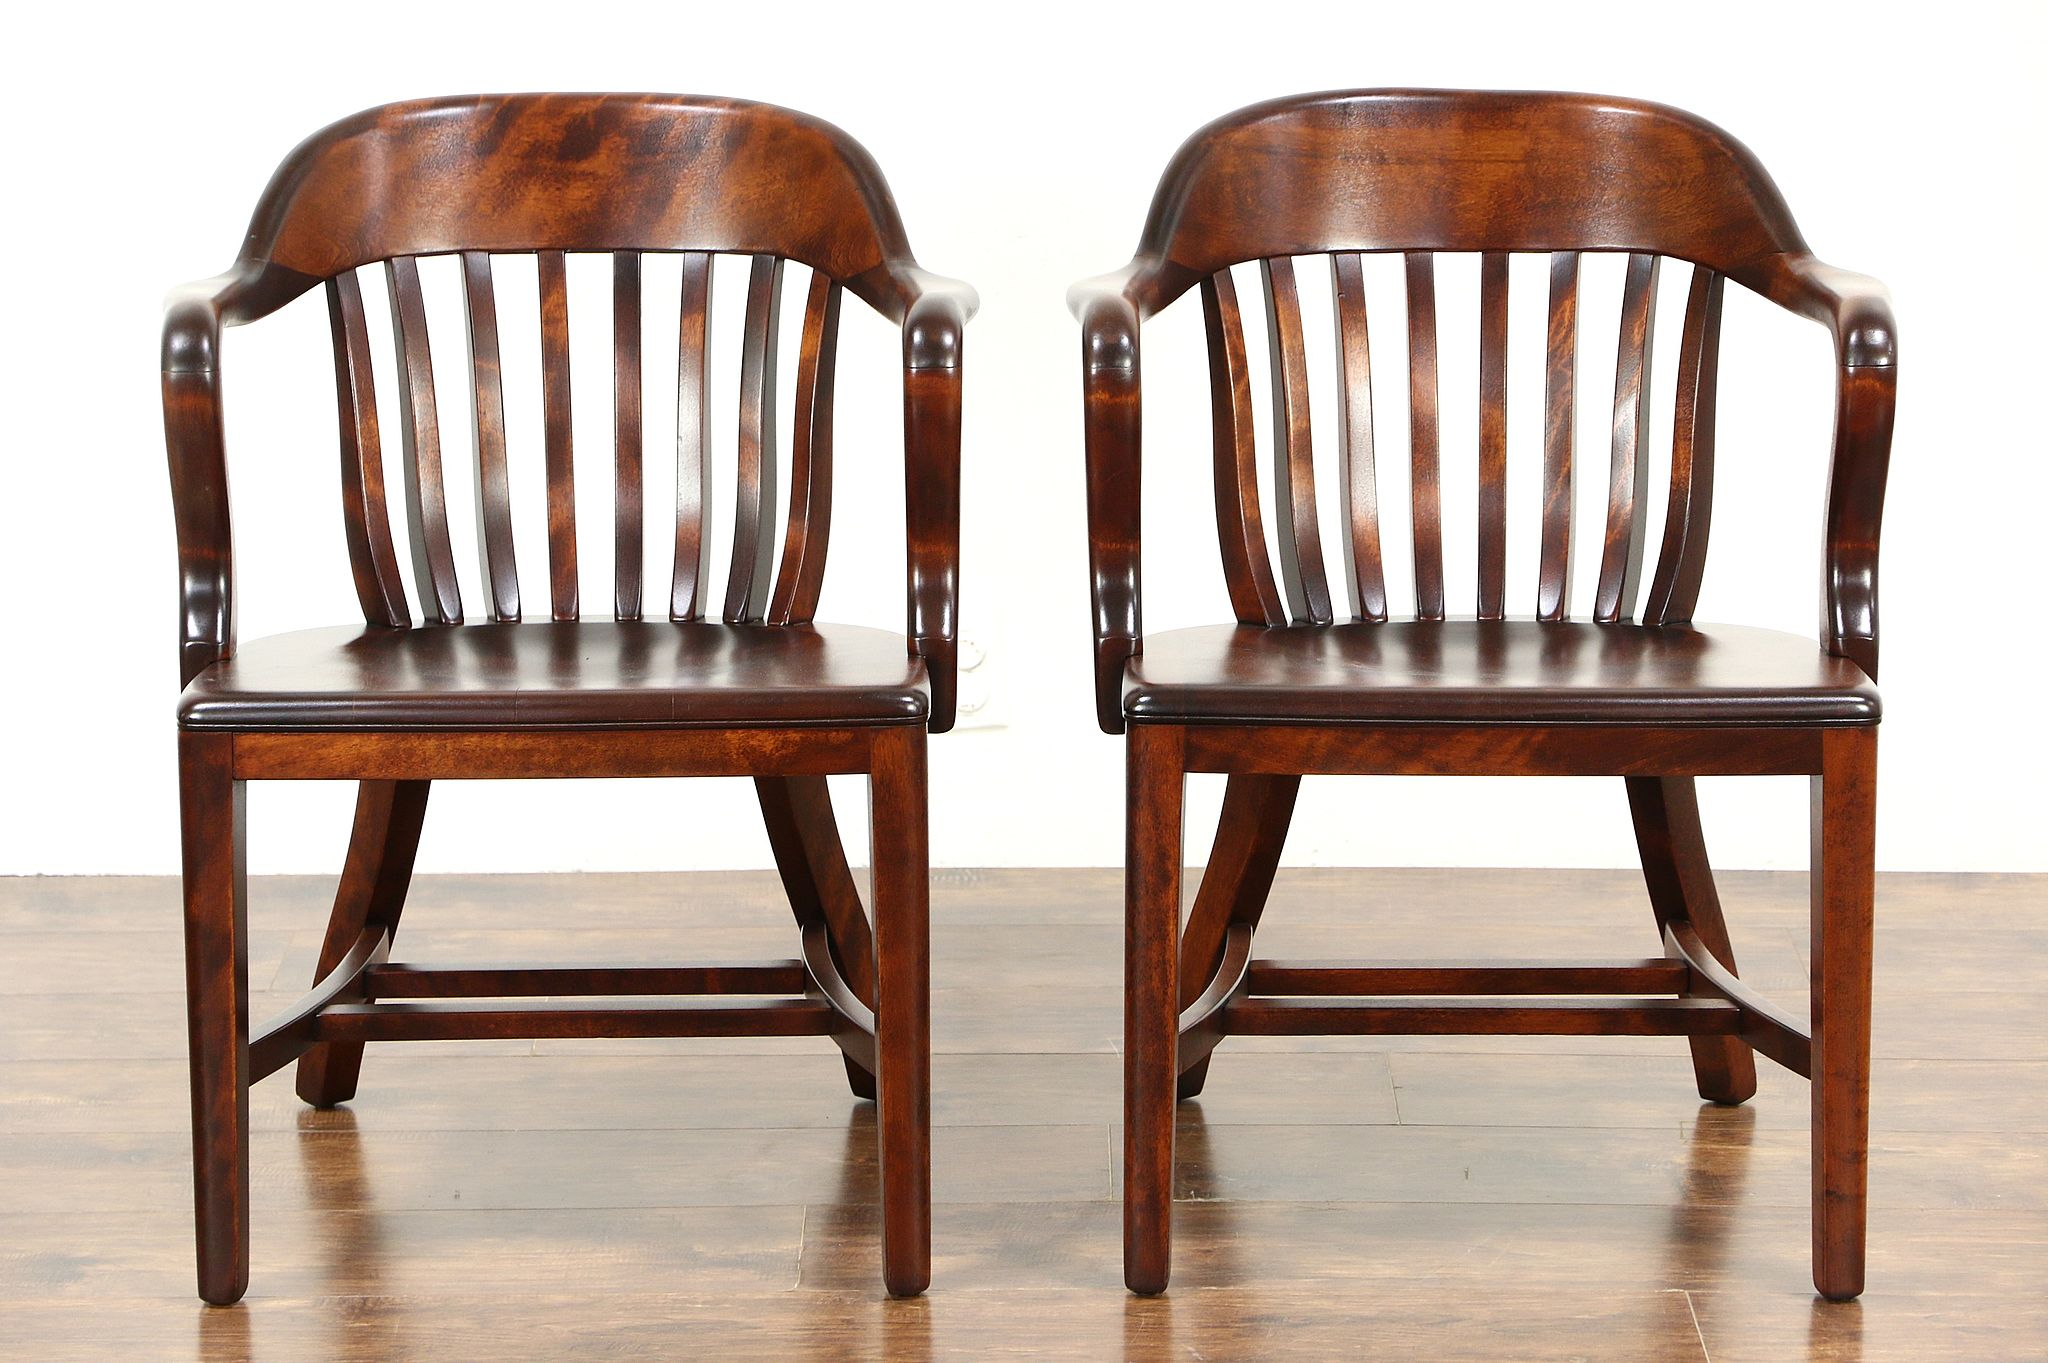 Pair 1920 Antique Birch Banker Office or Library Chairs  SOLD   Pair 1920 Antique Birch Banker Office or Library Chairs  . Antique Library Armchairs. Home Design Ideas